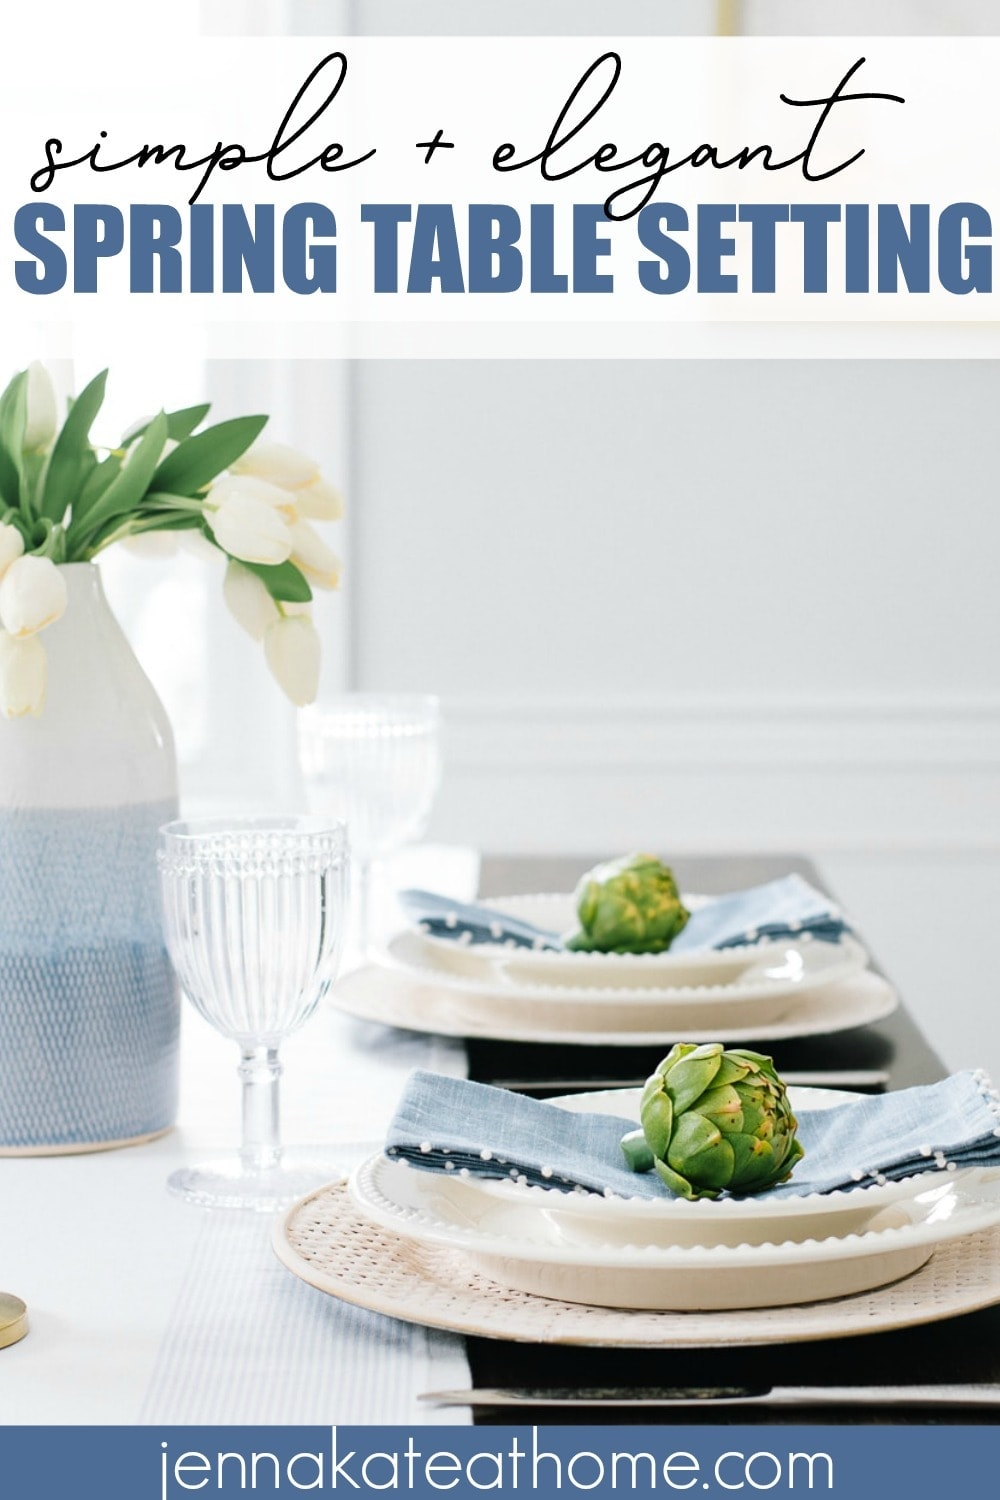 A simple but elegant spring table setting idea featuring shades of blue and white that's also perfect for Easter